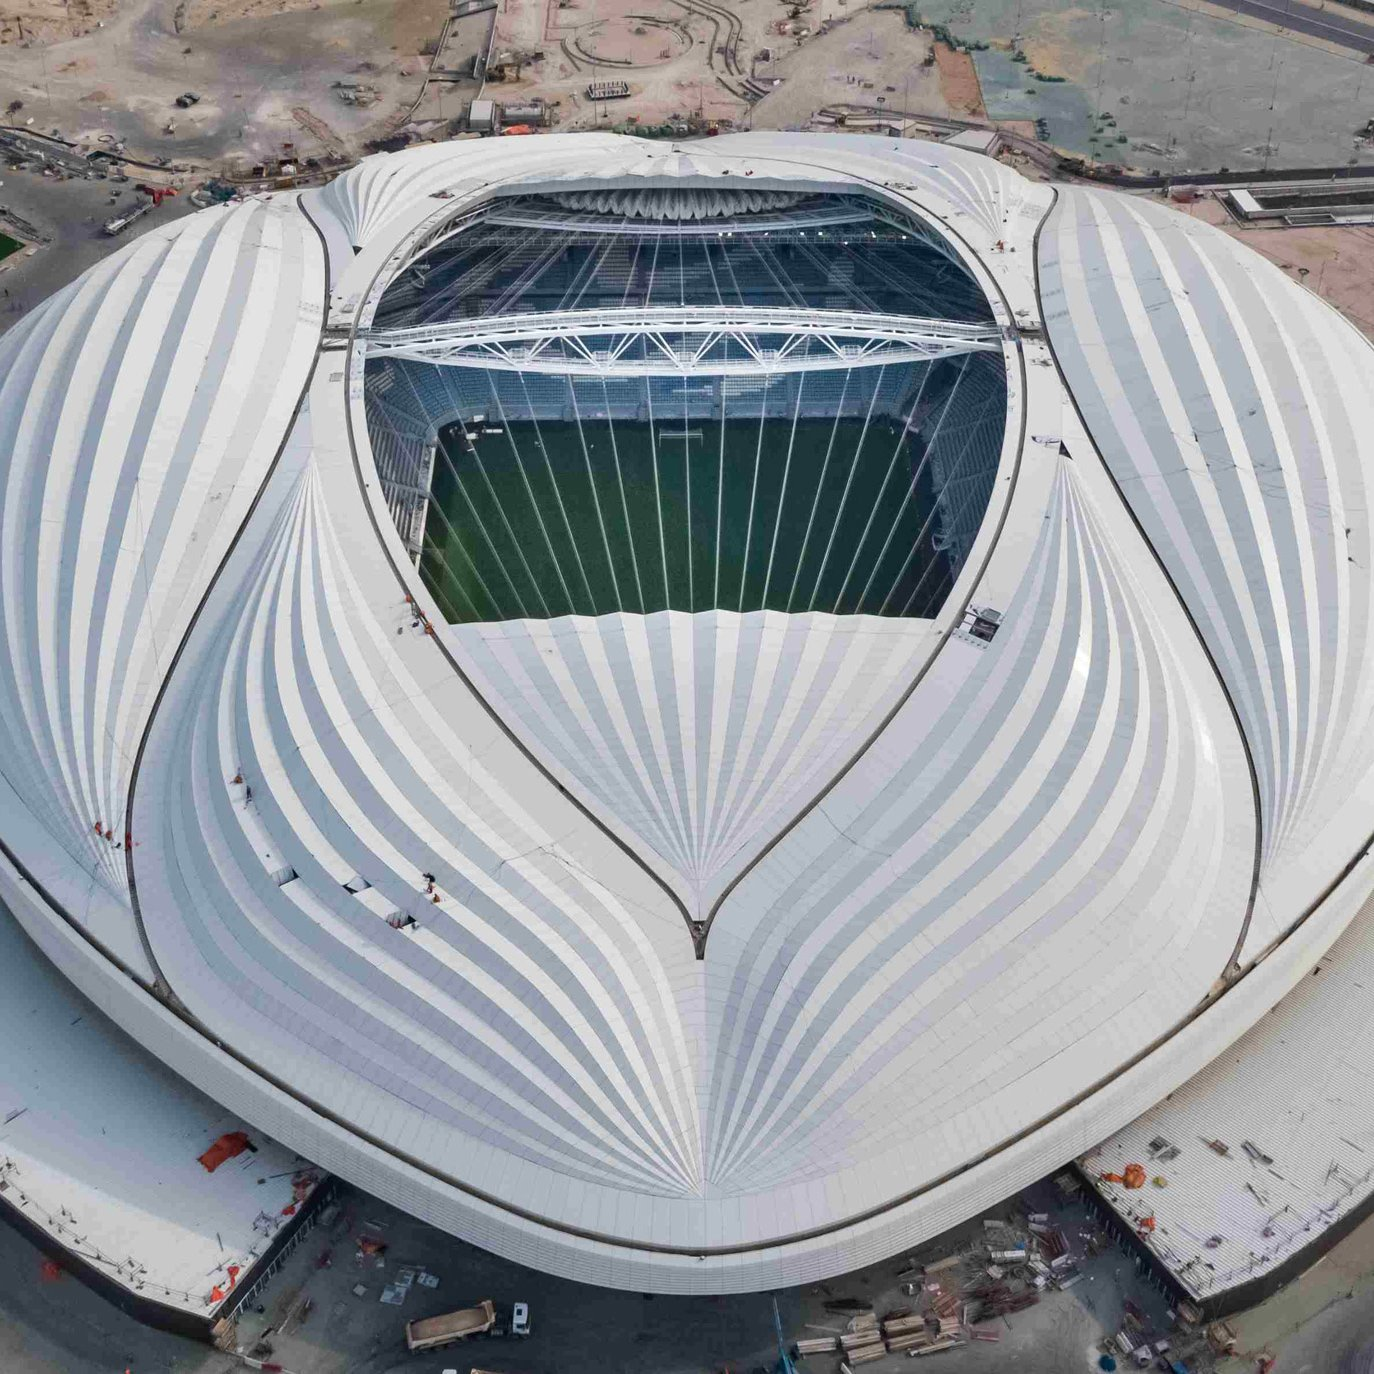 Dezeen's top 10 architecture trends 2019: Al Wakrah Stadium for the 2022 World Cup in Qatar by Zaha Hadid Architects